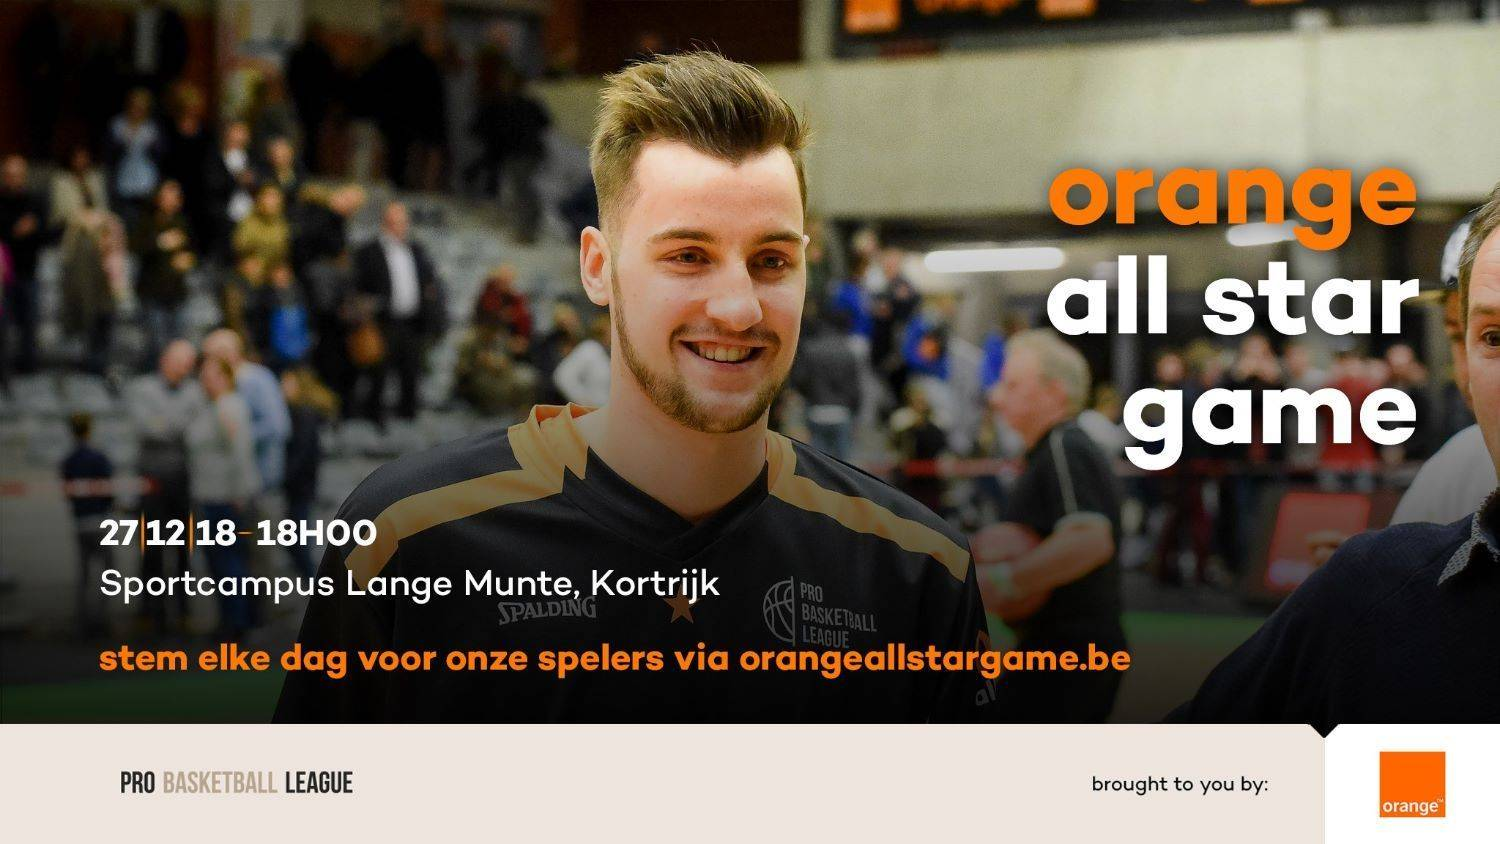 All star game op 27 december. Stem voor onze spelers !!!